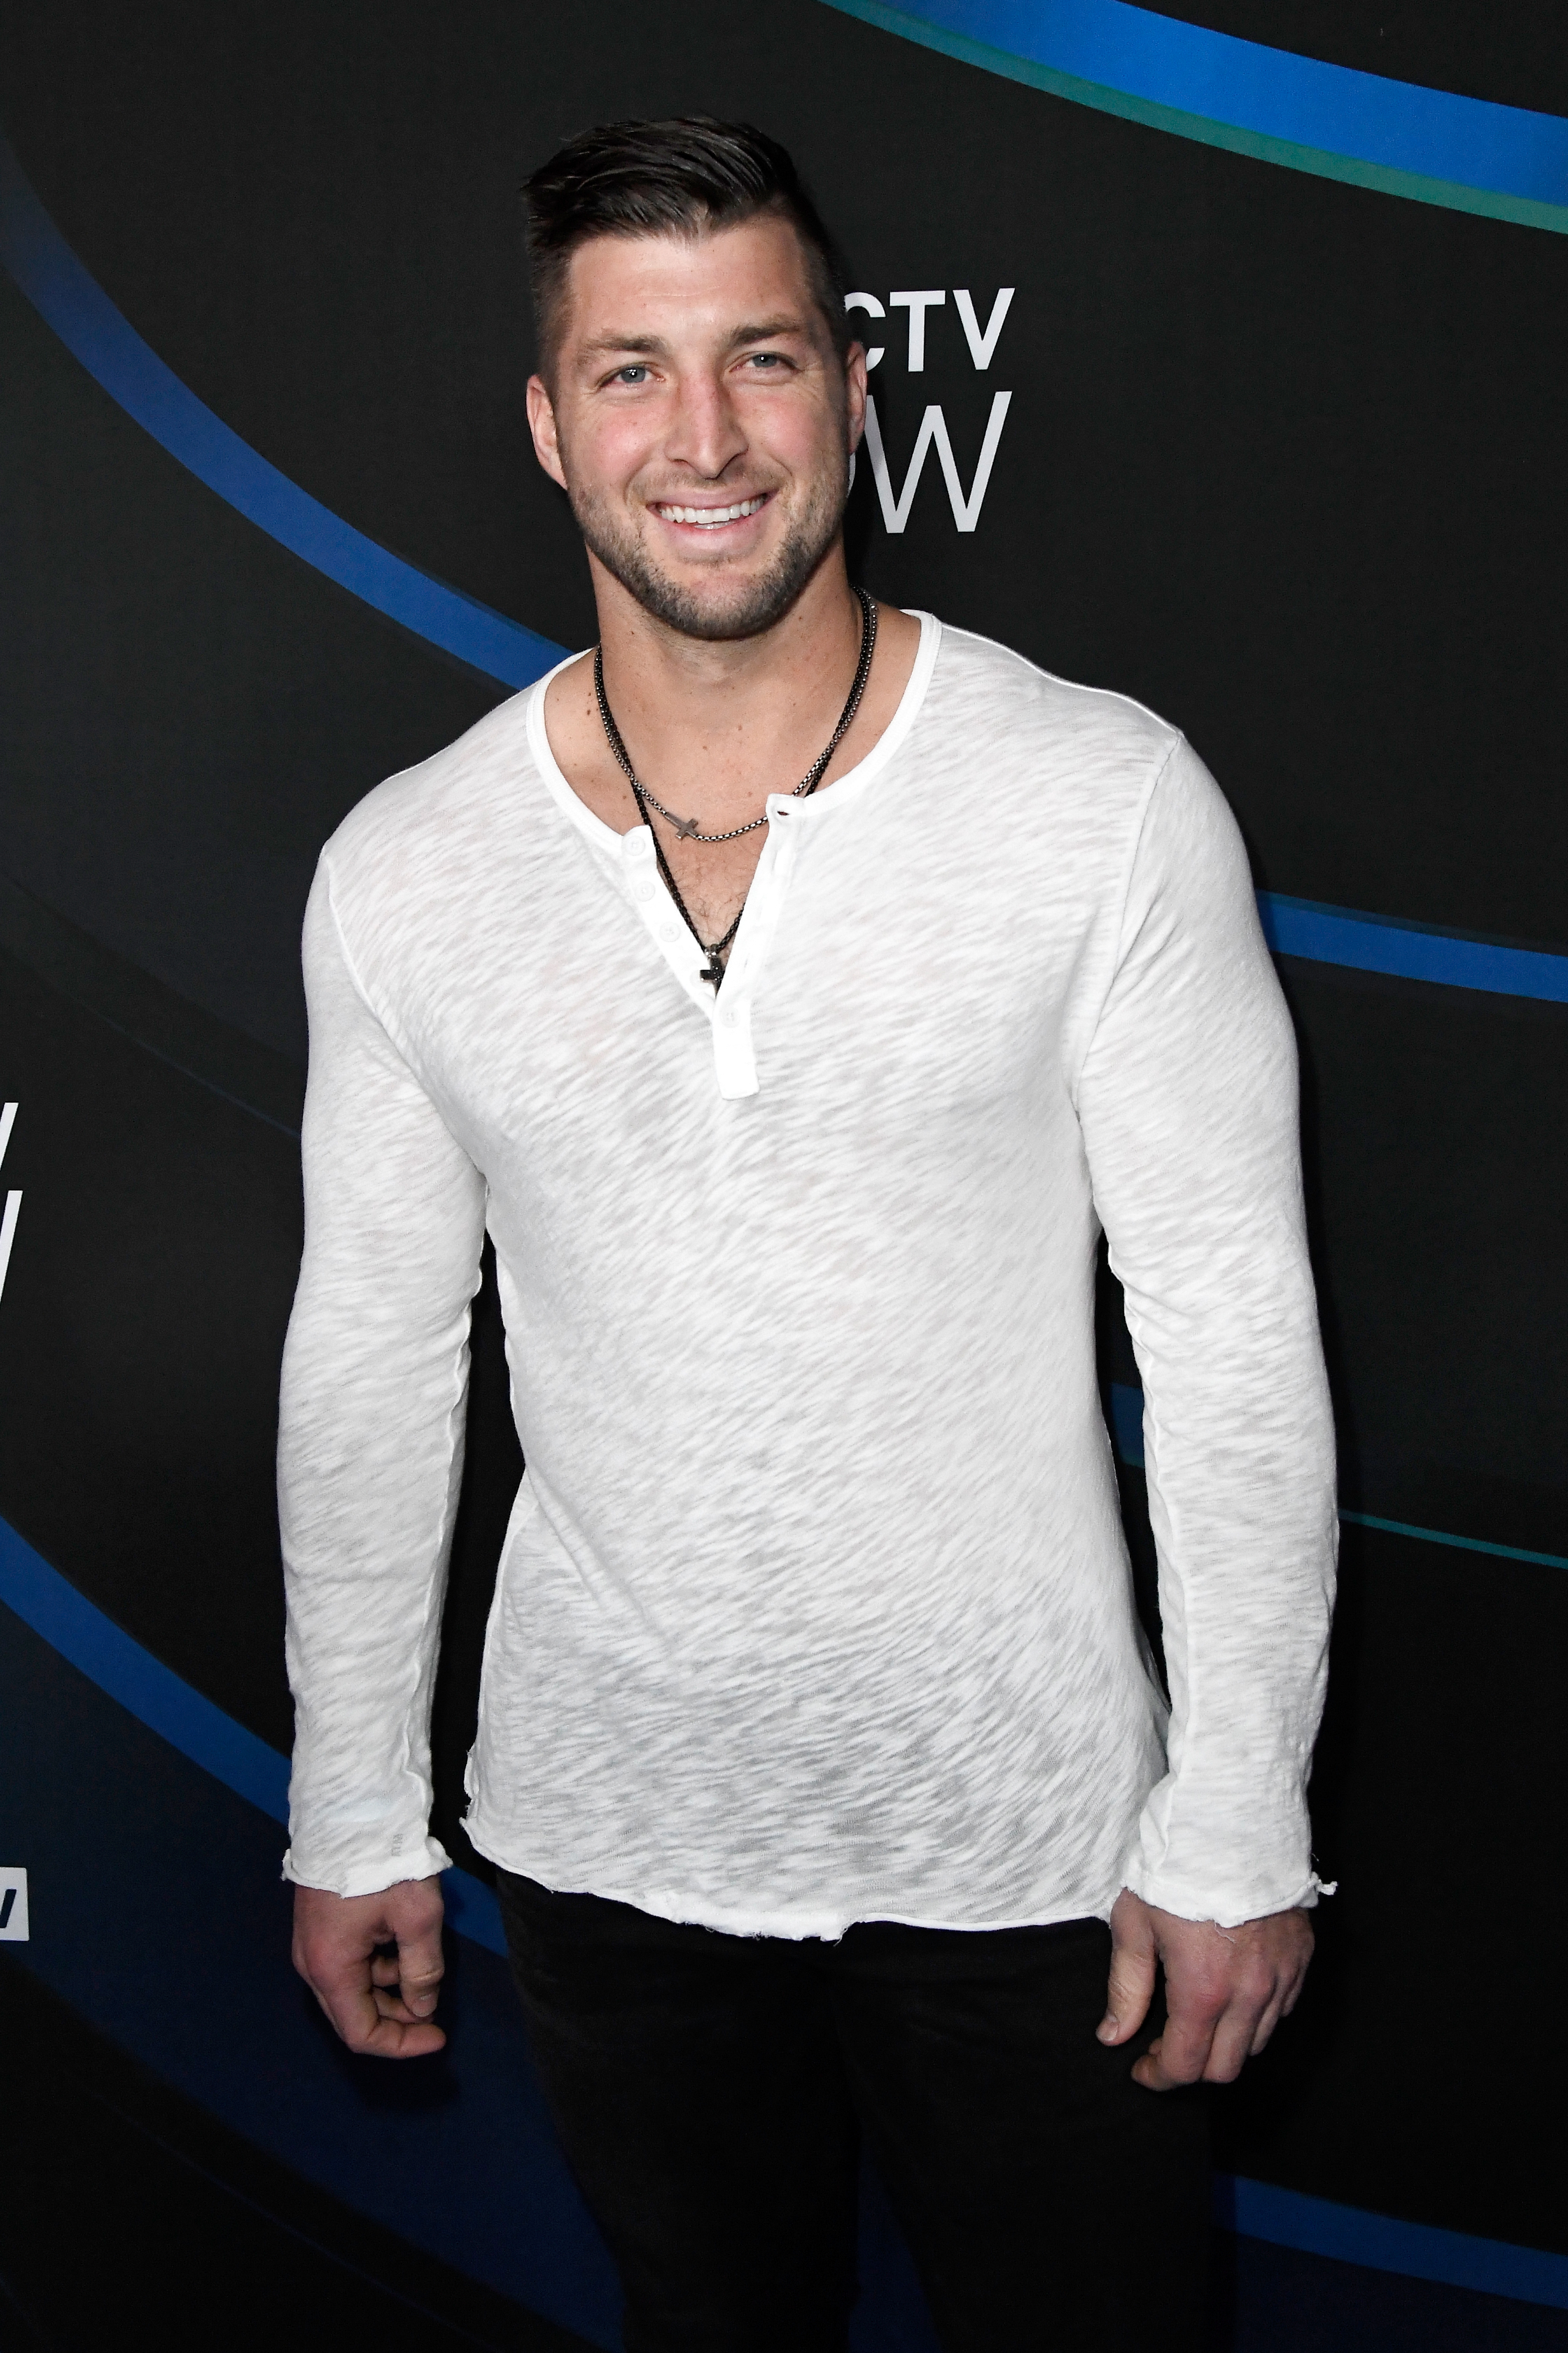 Baseball player/former NFL player Tim Tebow attends the 2017 DIRECTV NOW Super Saturday Night Concert at Club Nomadic on February 4, 2017 in Houston, Texas.